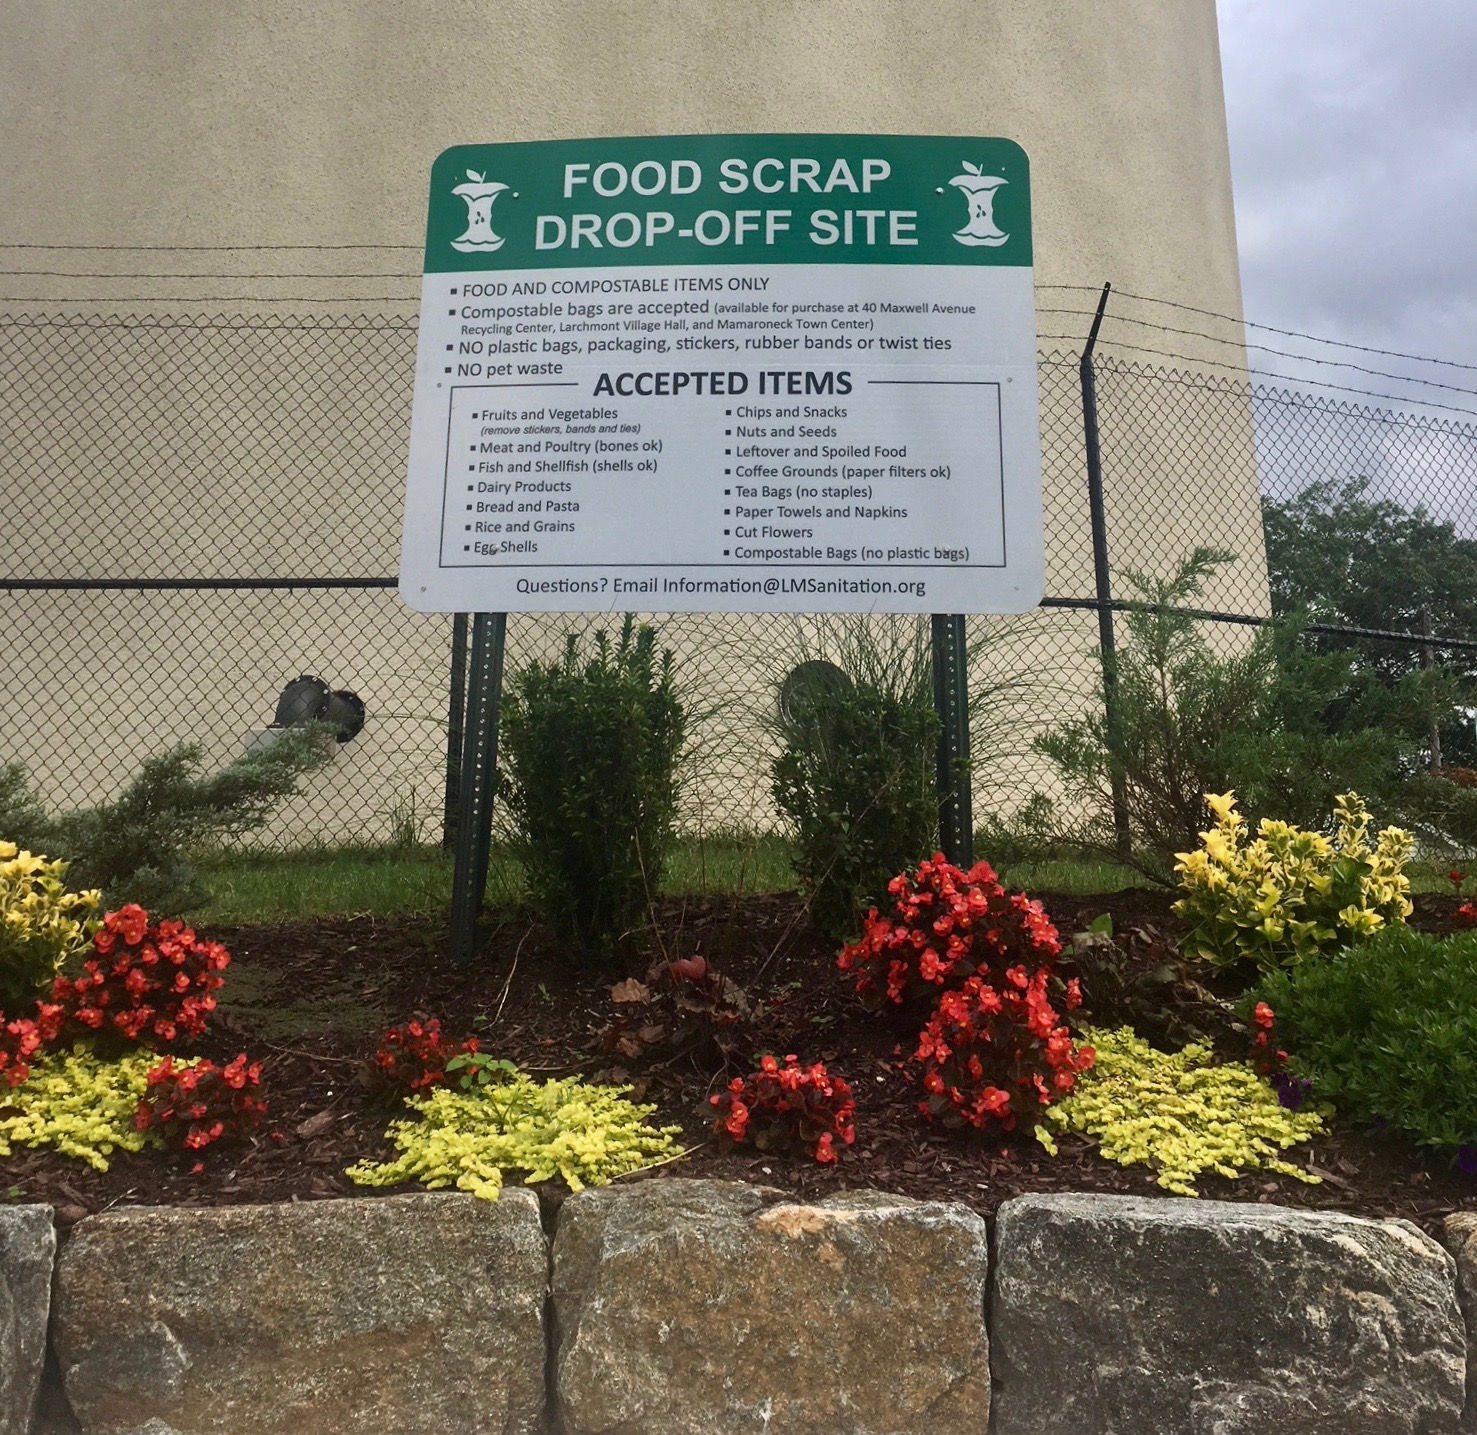 Town of Mamaroneck's Food Scrap site